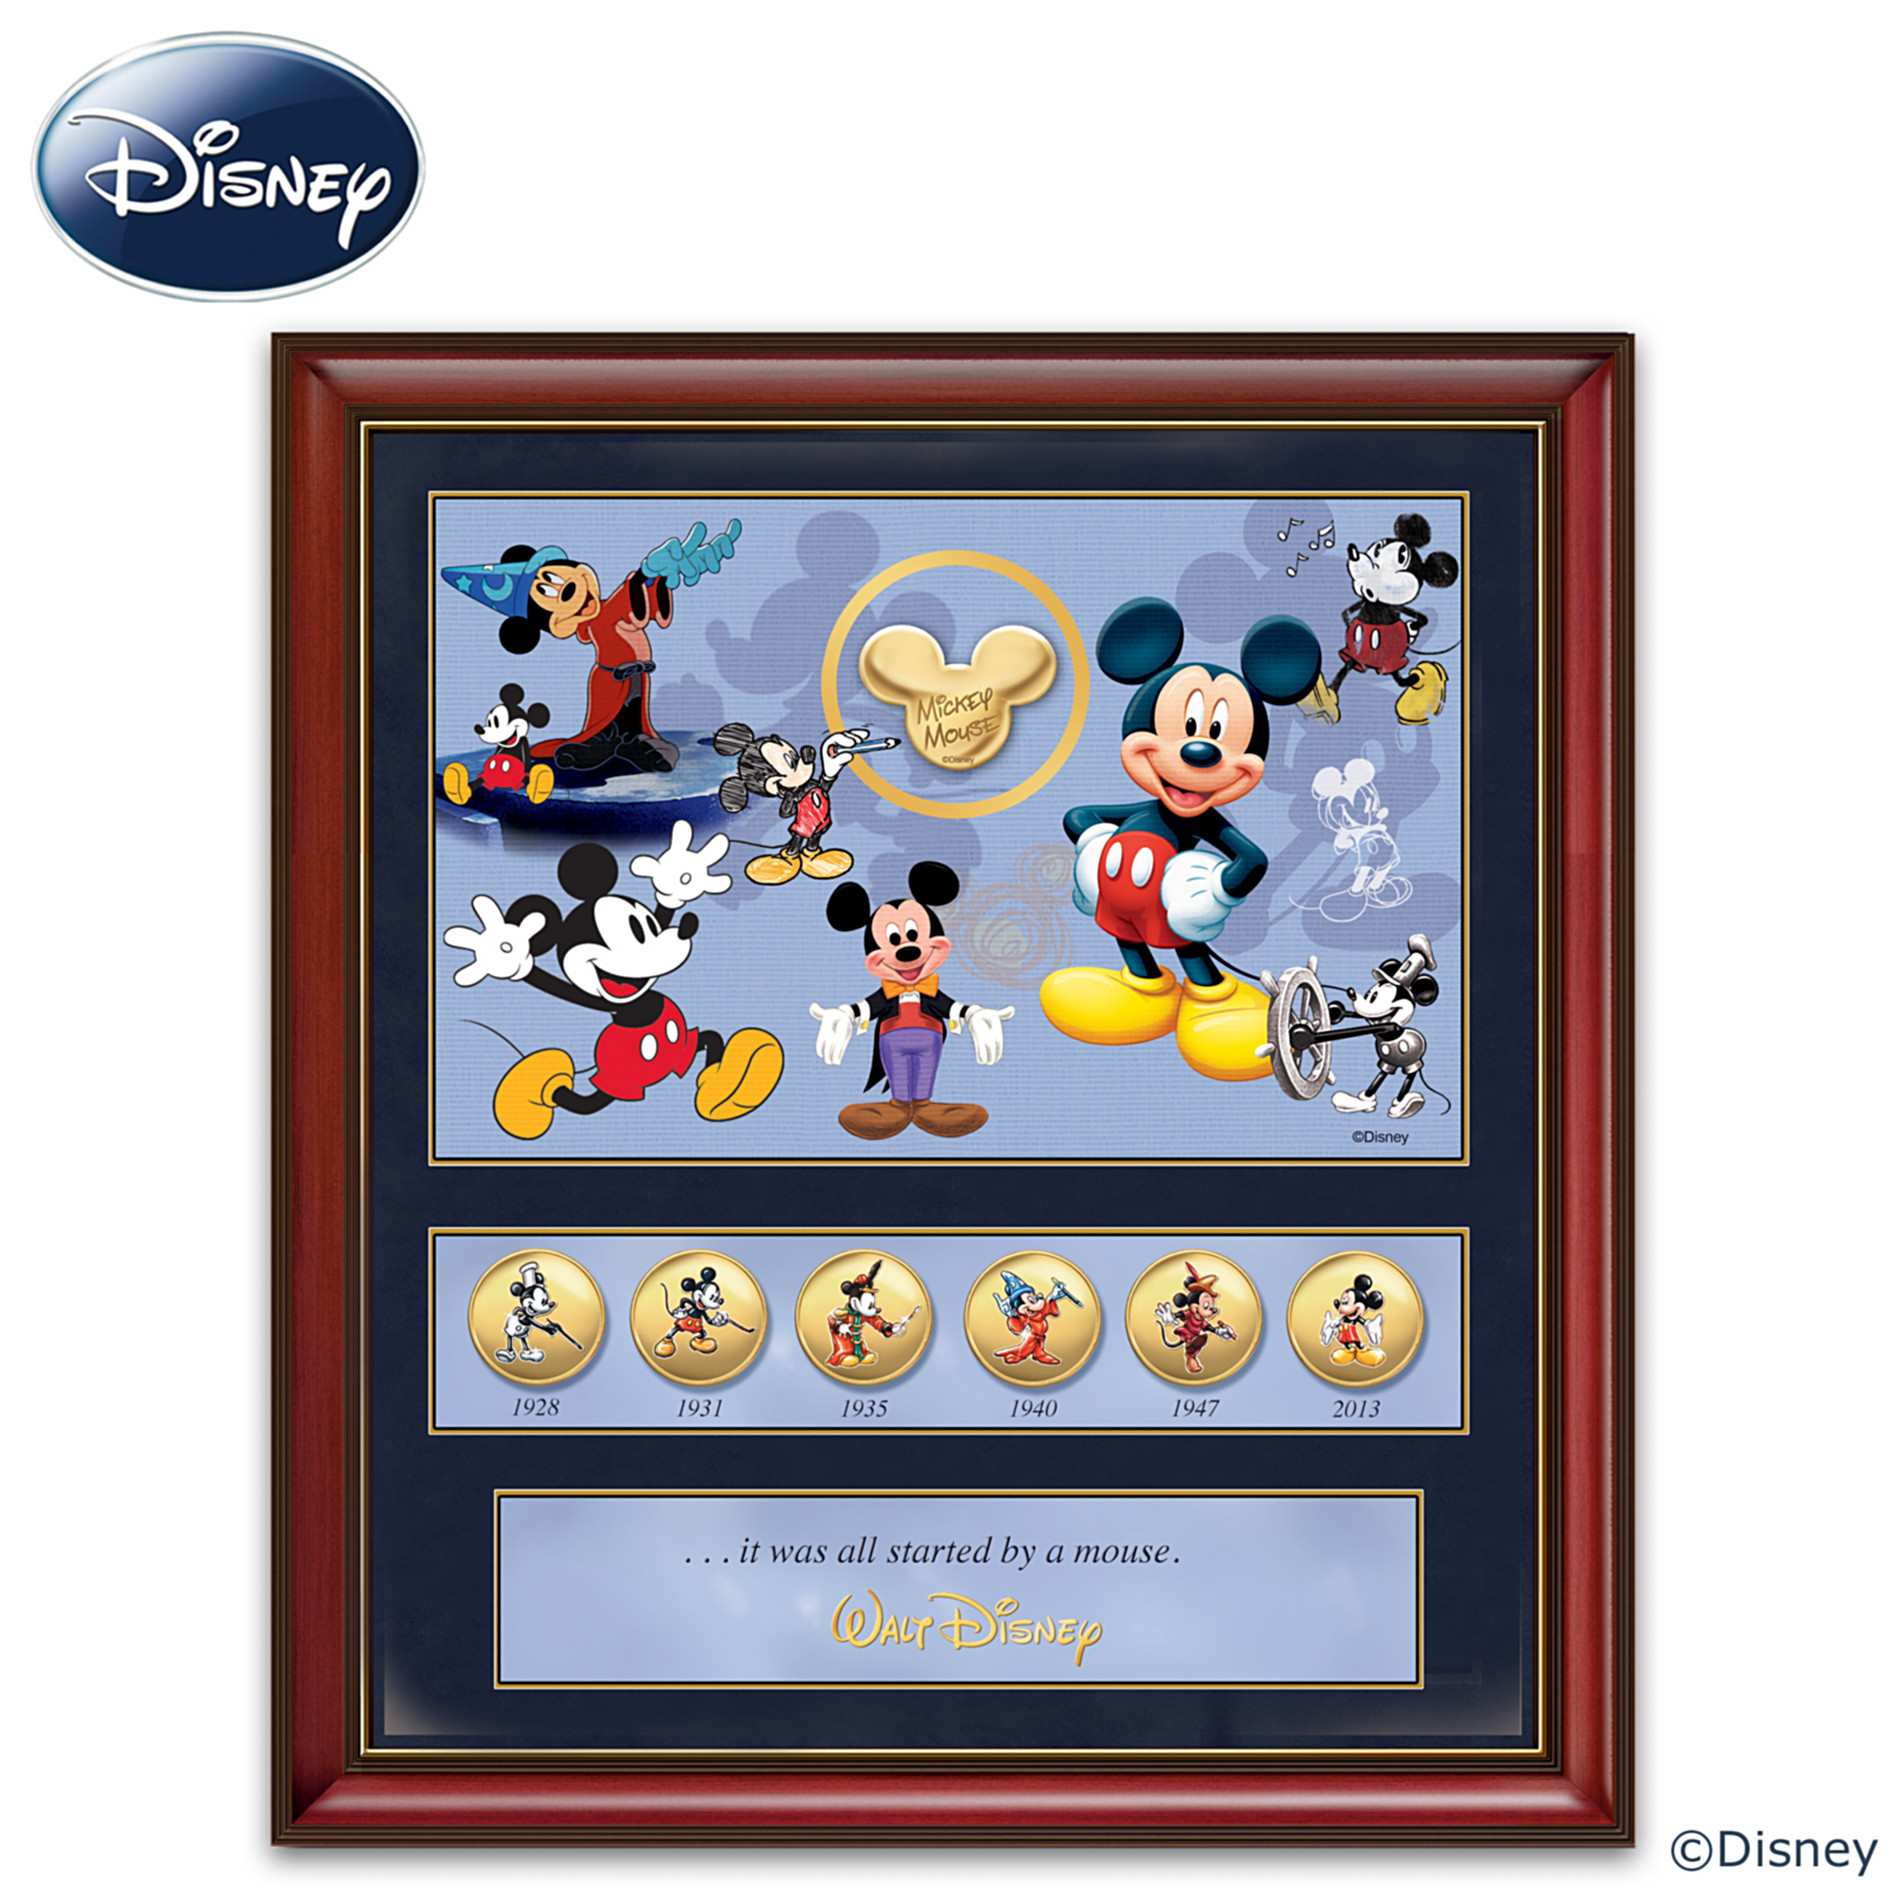 The Bradford Exchange 85th Anniversary Wall Decor: Disney Mickey Mouse Commemorative Print at Sears.com